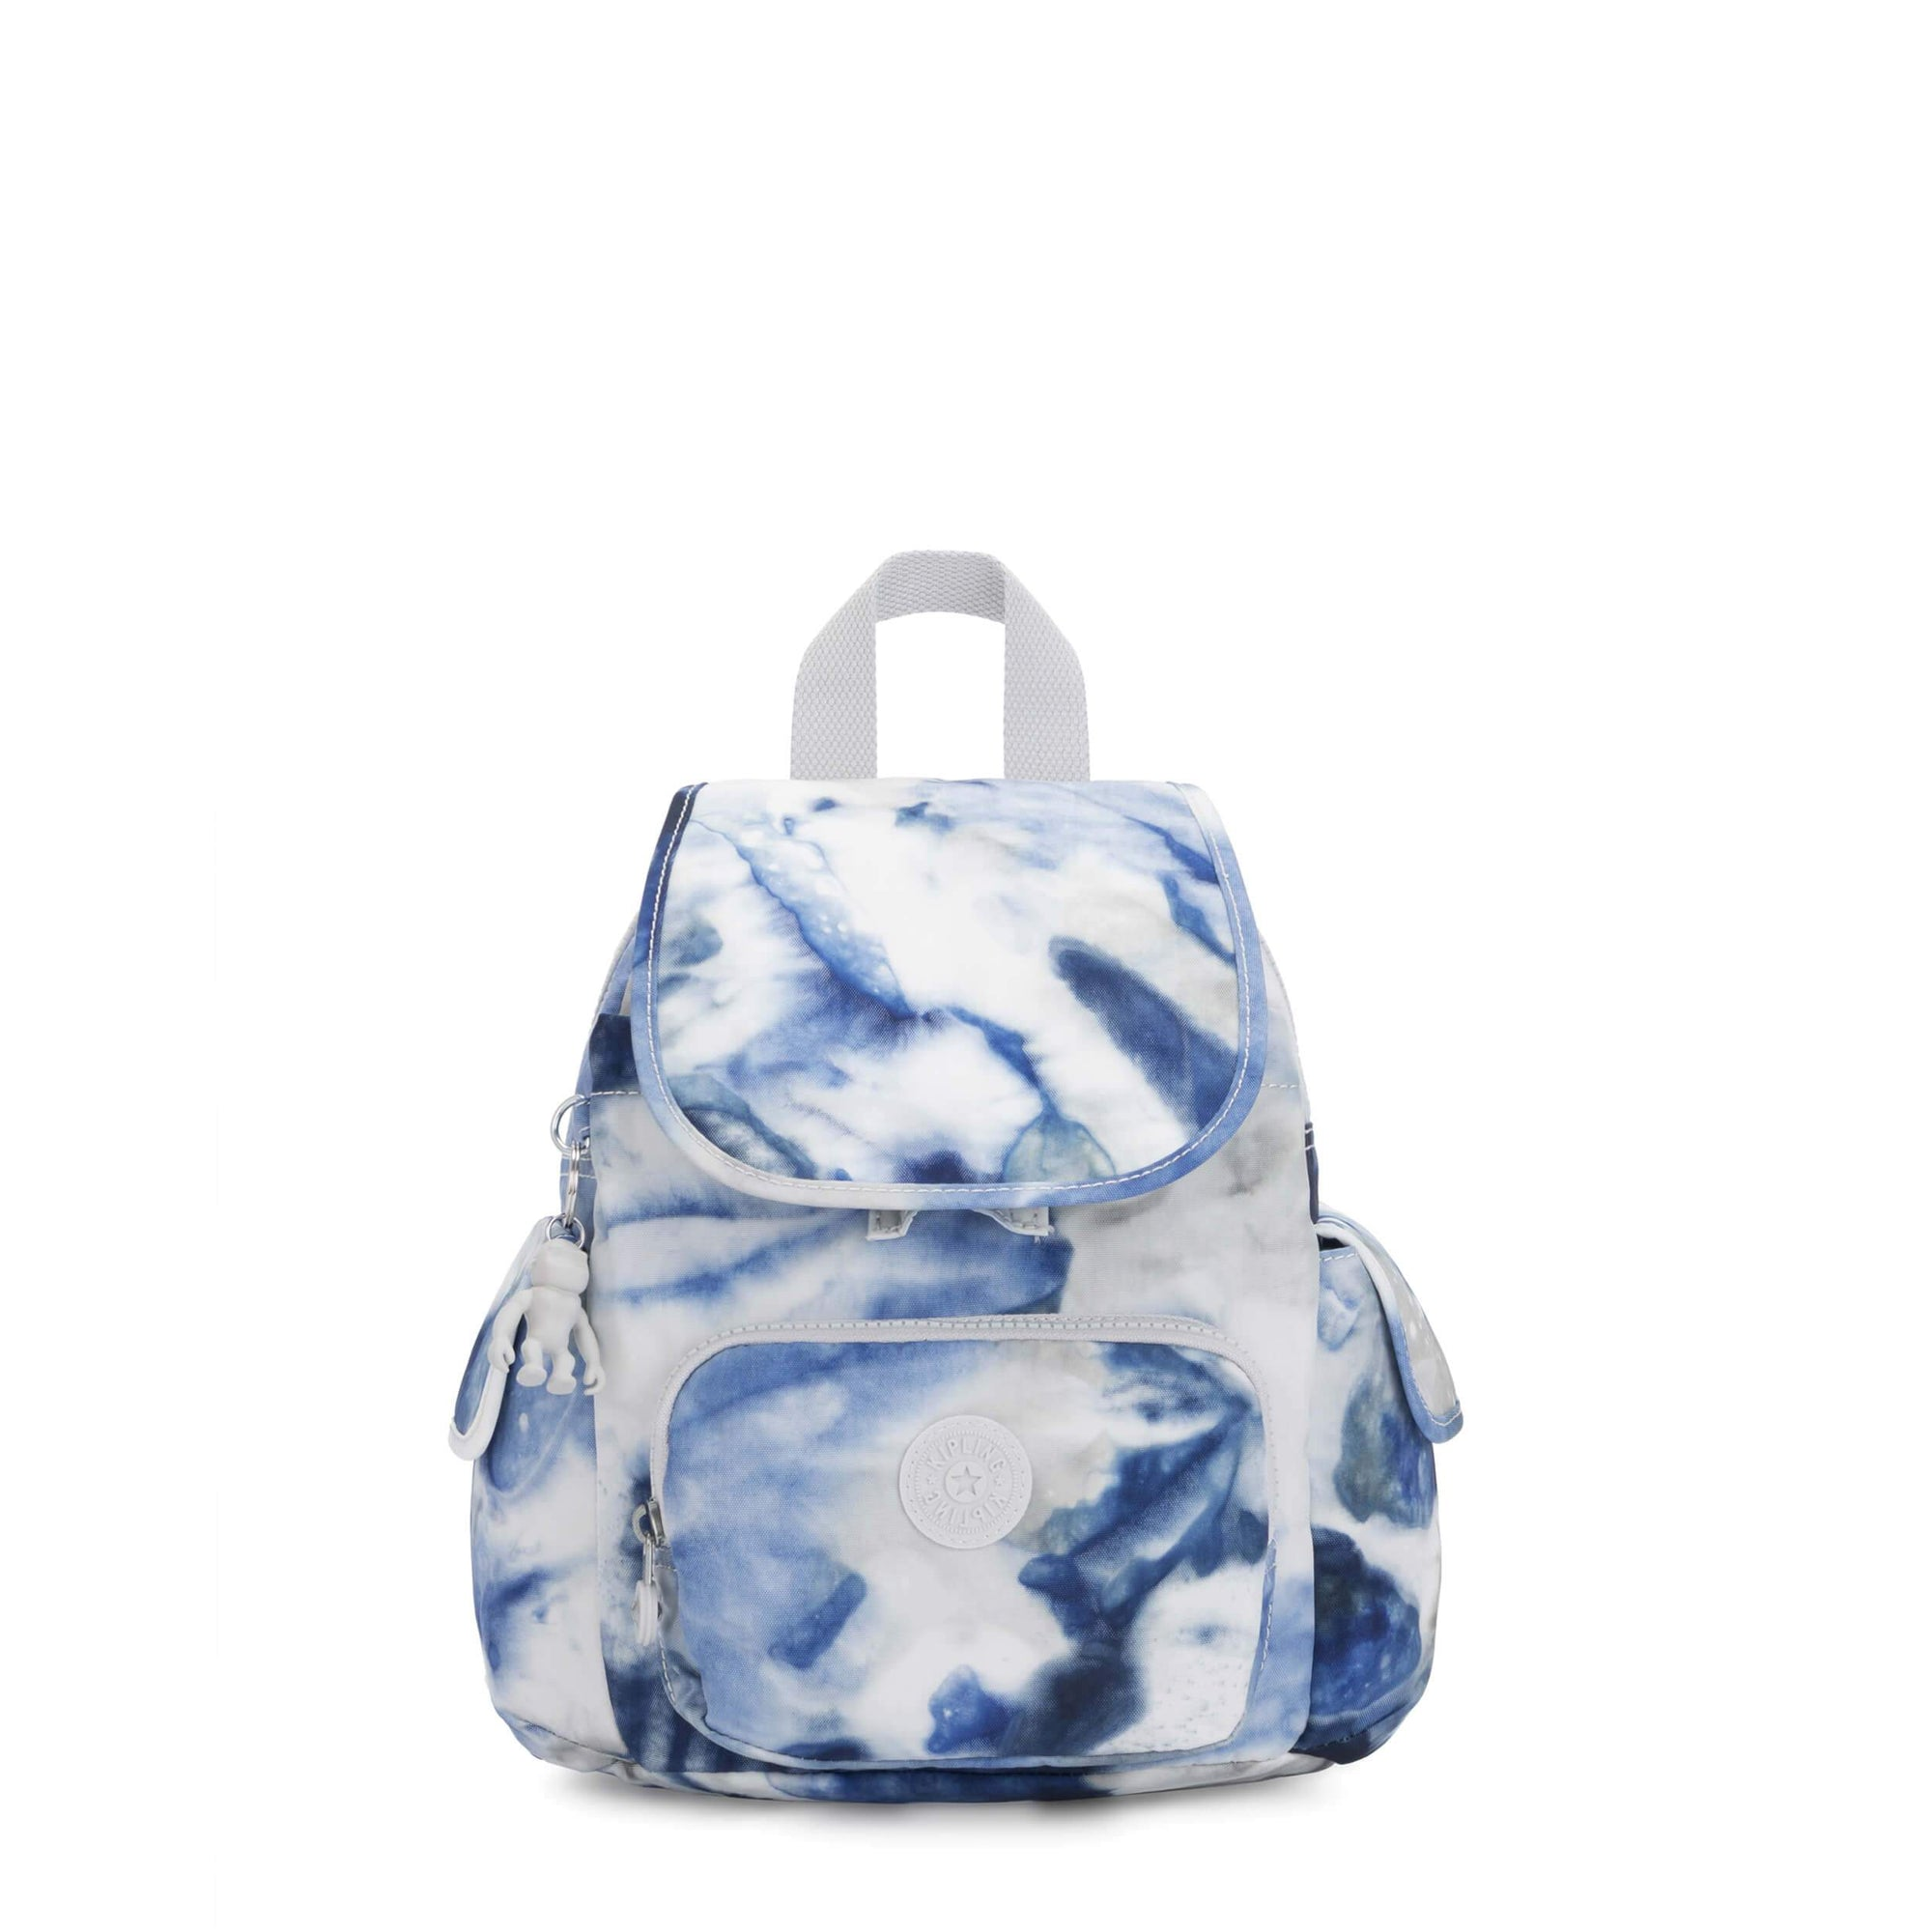 Backpack Kipling City Pack Mini Tie Dye Blue KI462848Y